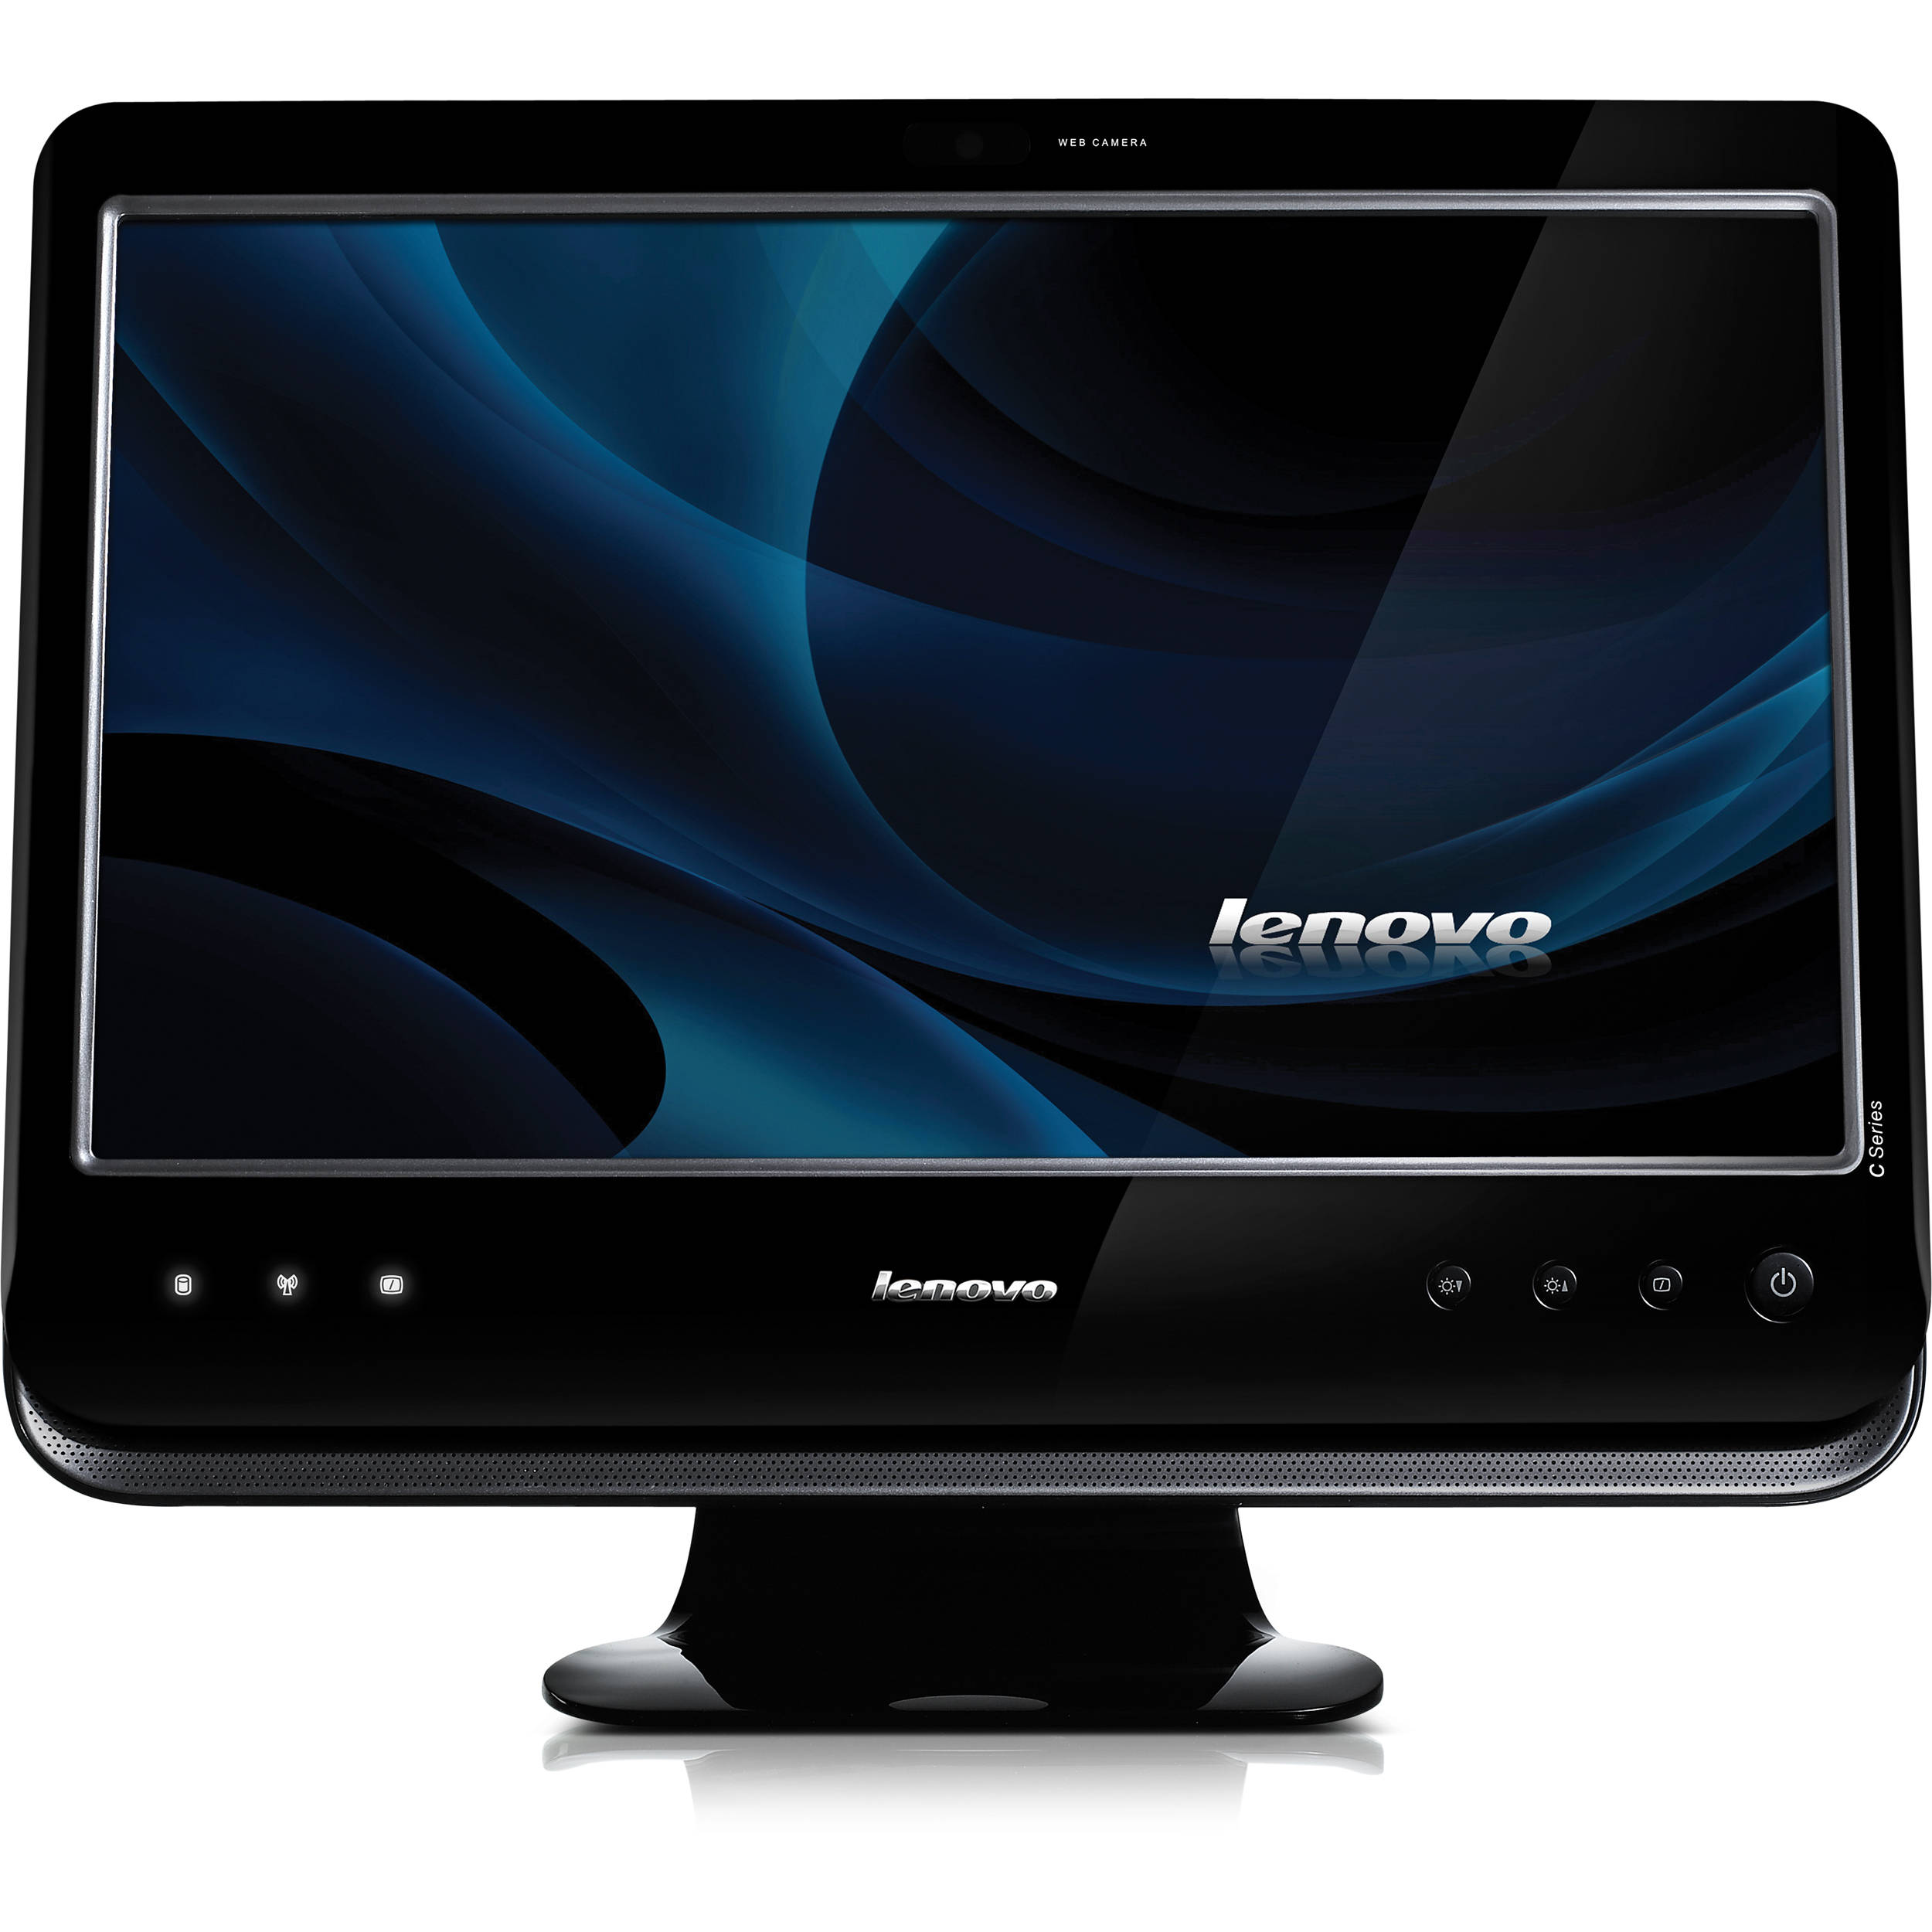 glad never lenovo c200 all in one desktop review Eragpess like the